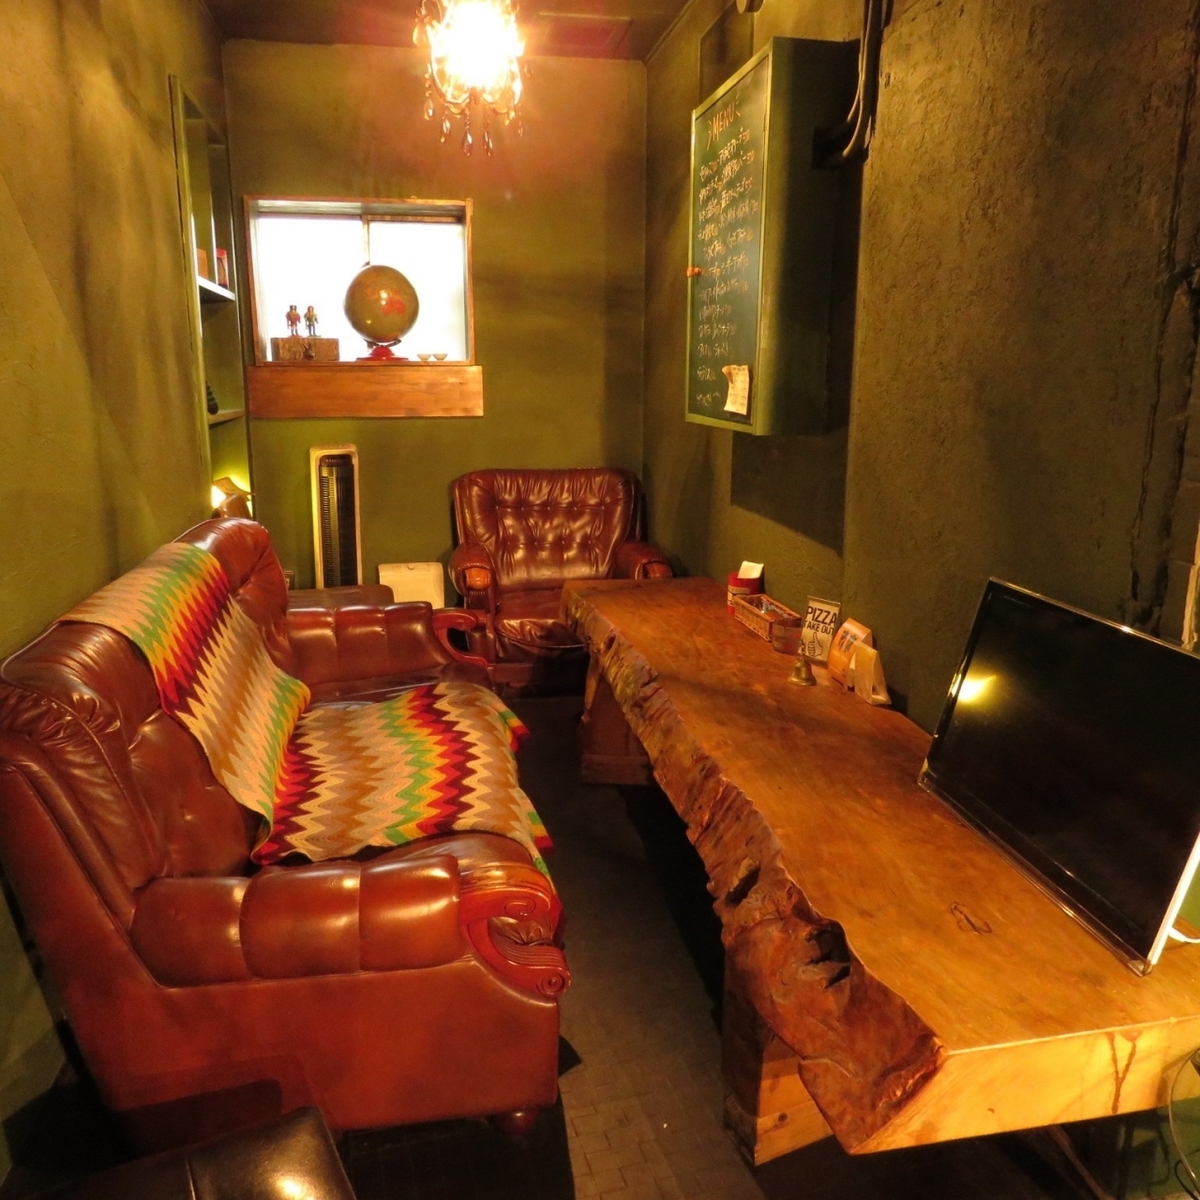 【GABU 1st floor】 It is a private room for 3 to 6 people.◎ at friends and girls' associations